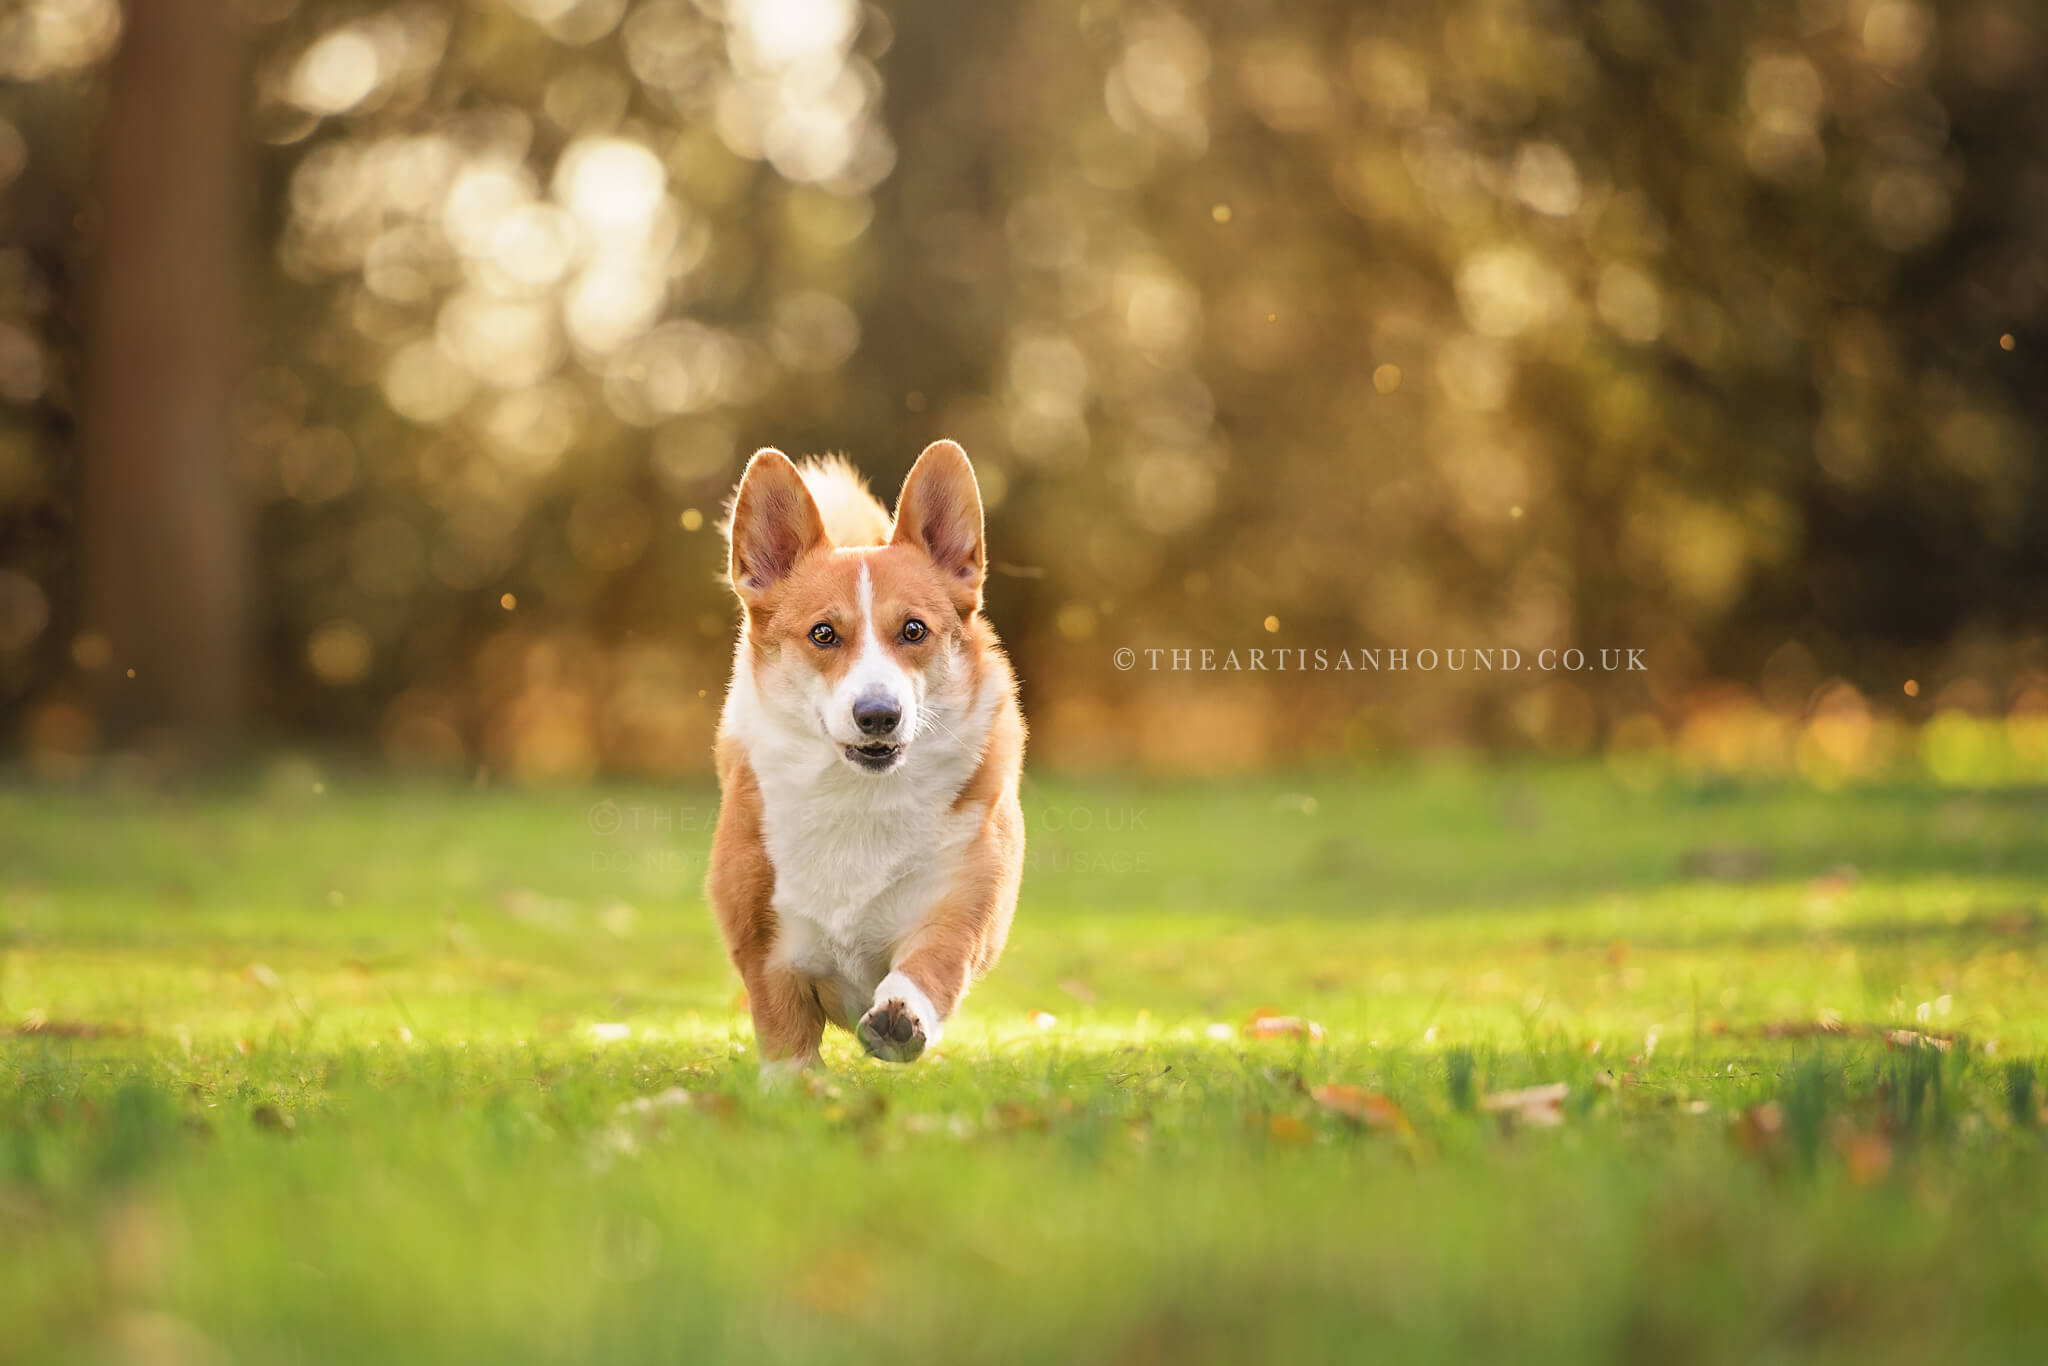 Corgi-dog-running-across-field